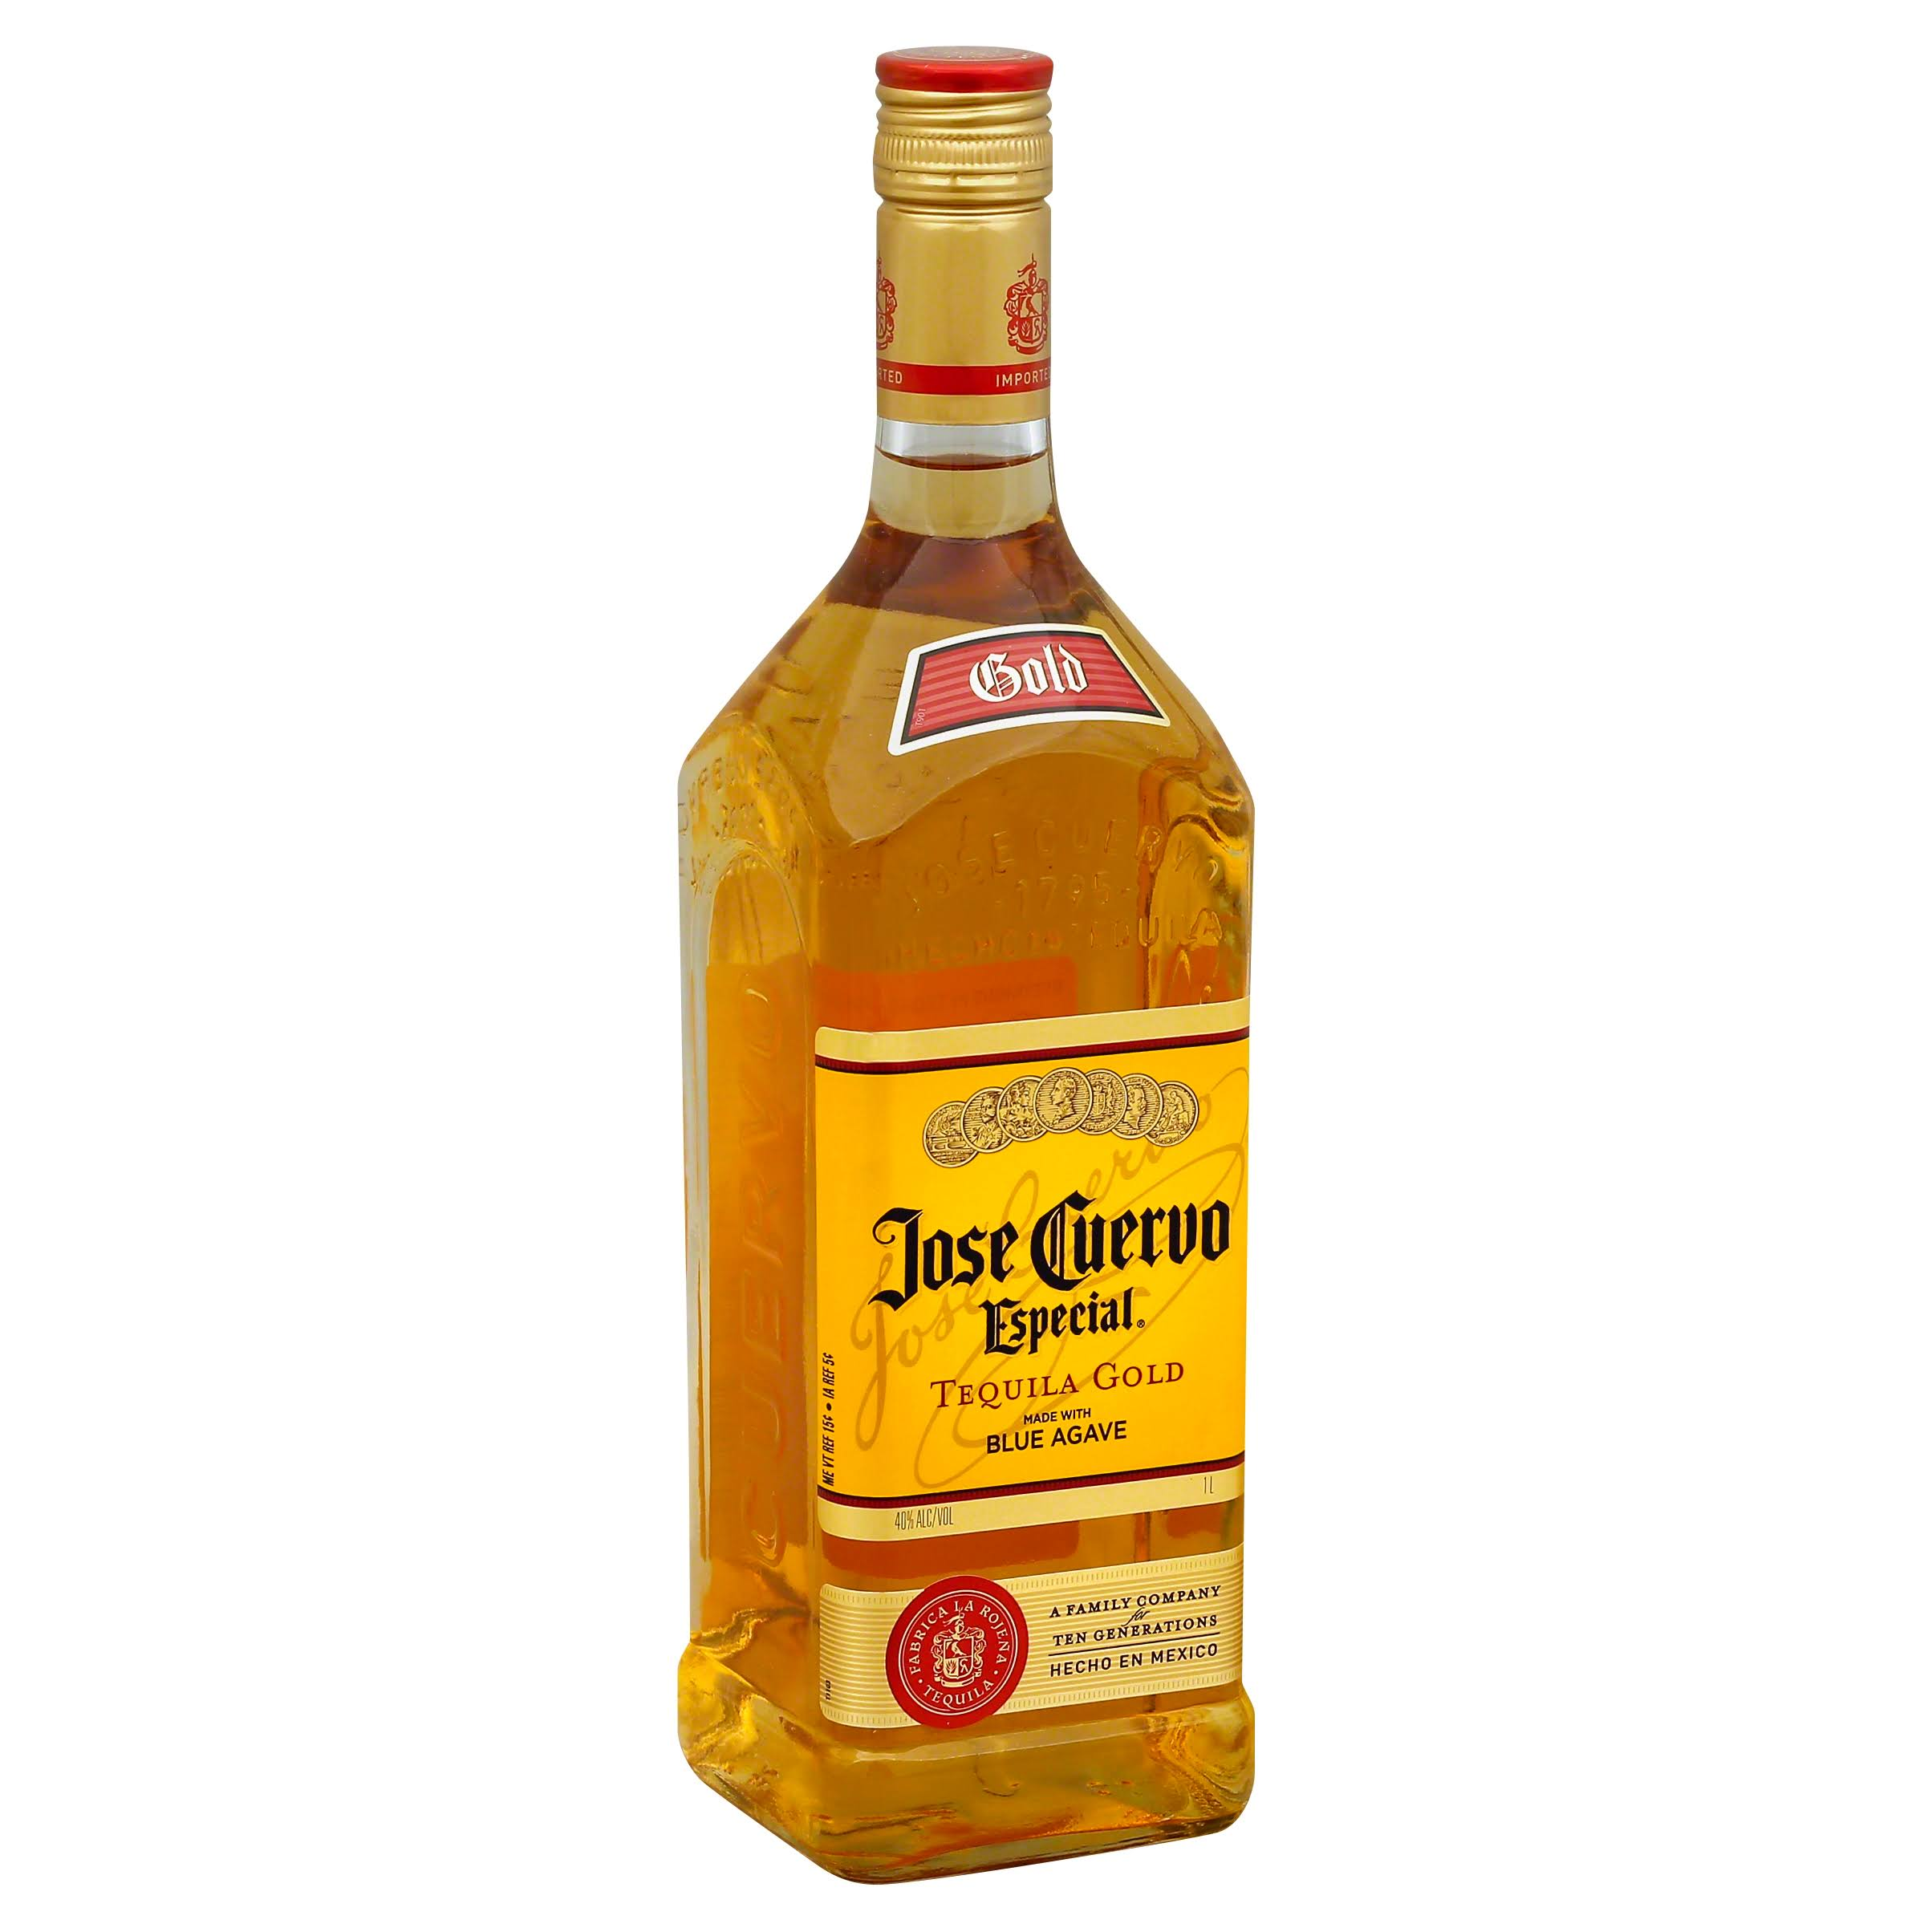 Jose Cuervo Especial, Tequila Gold - 1 L bottle